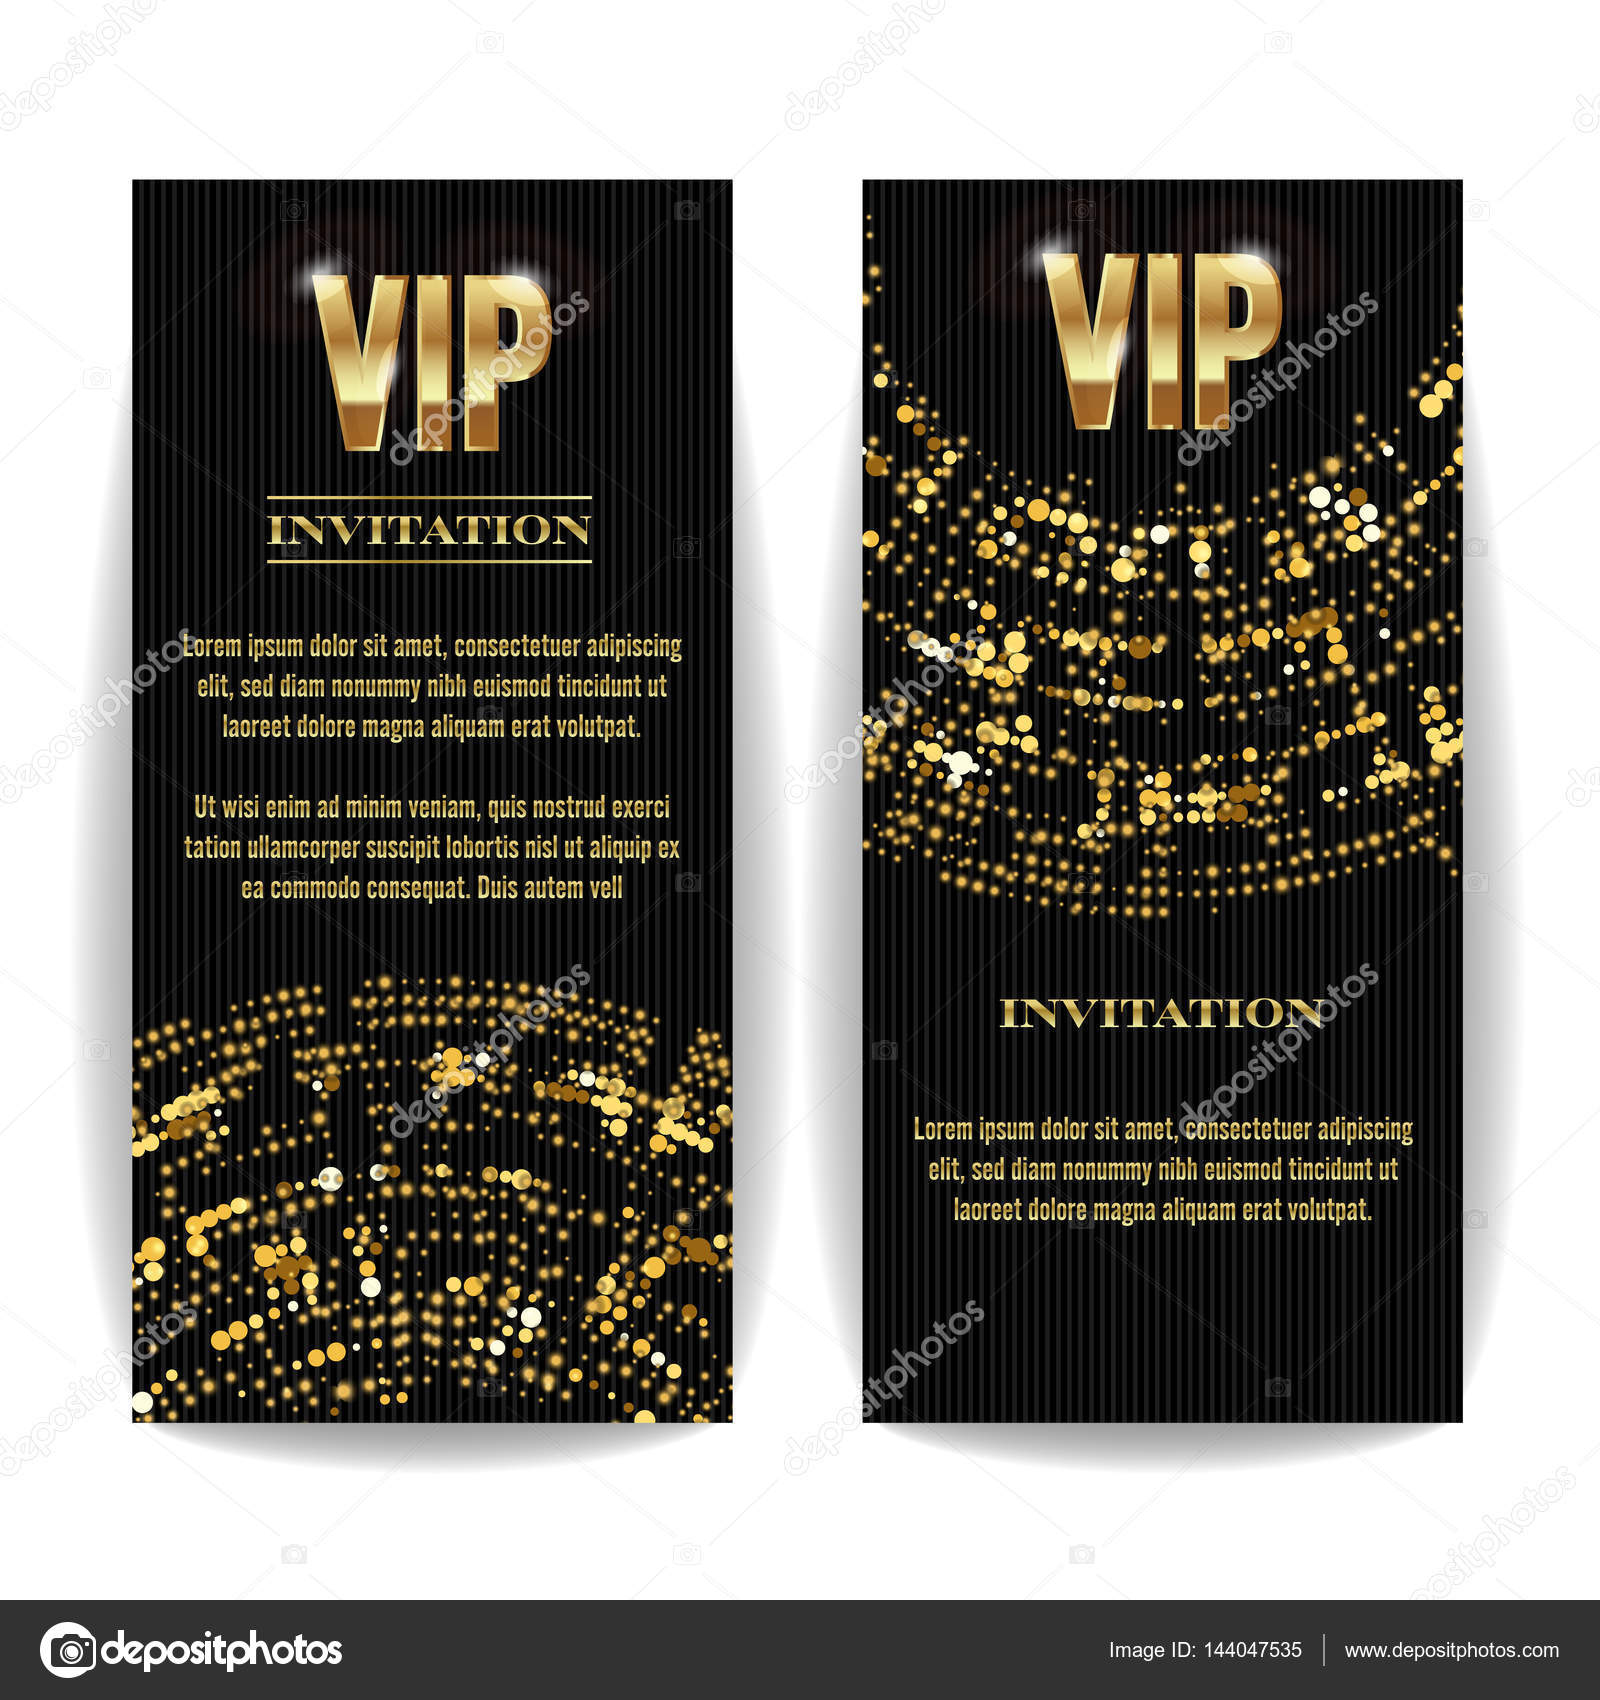 Vip invitation card vector party premium blank poster flyer black vip invitation card vector party premium blank poster flyer black golden design template spiritdancerdesigns Image collections